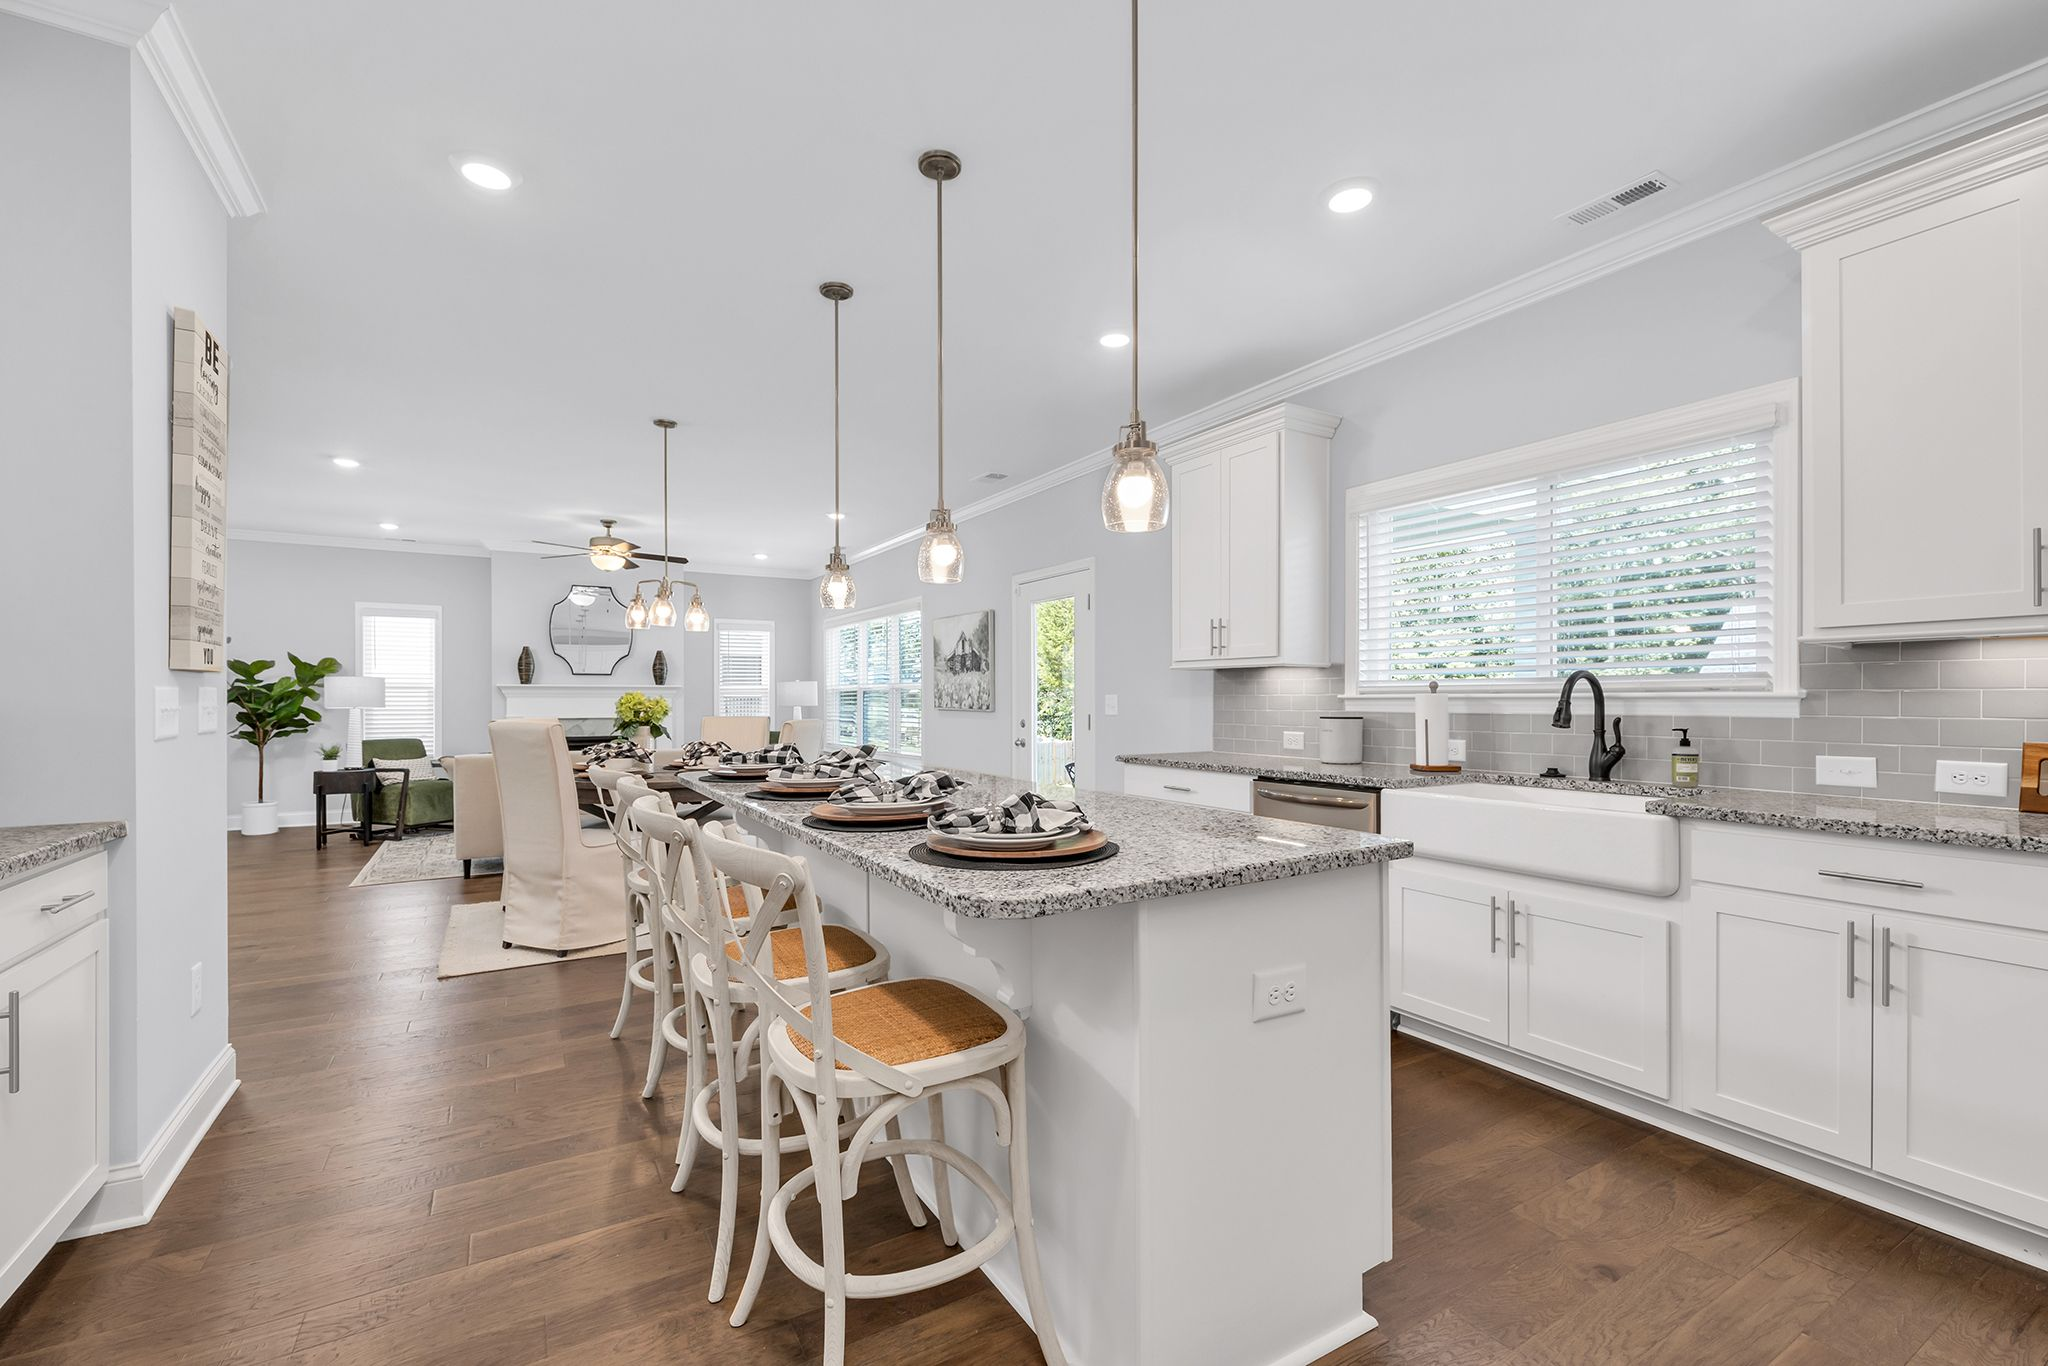 Kitchen featured in The Alexandria By Goodall Homes in Owensboro, KY